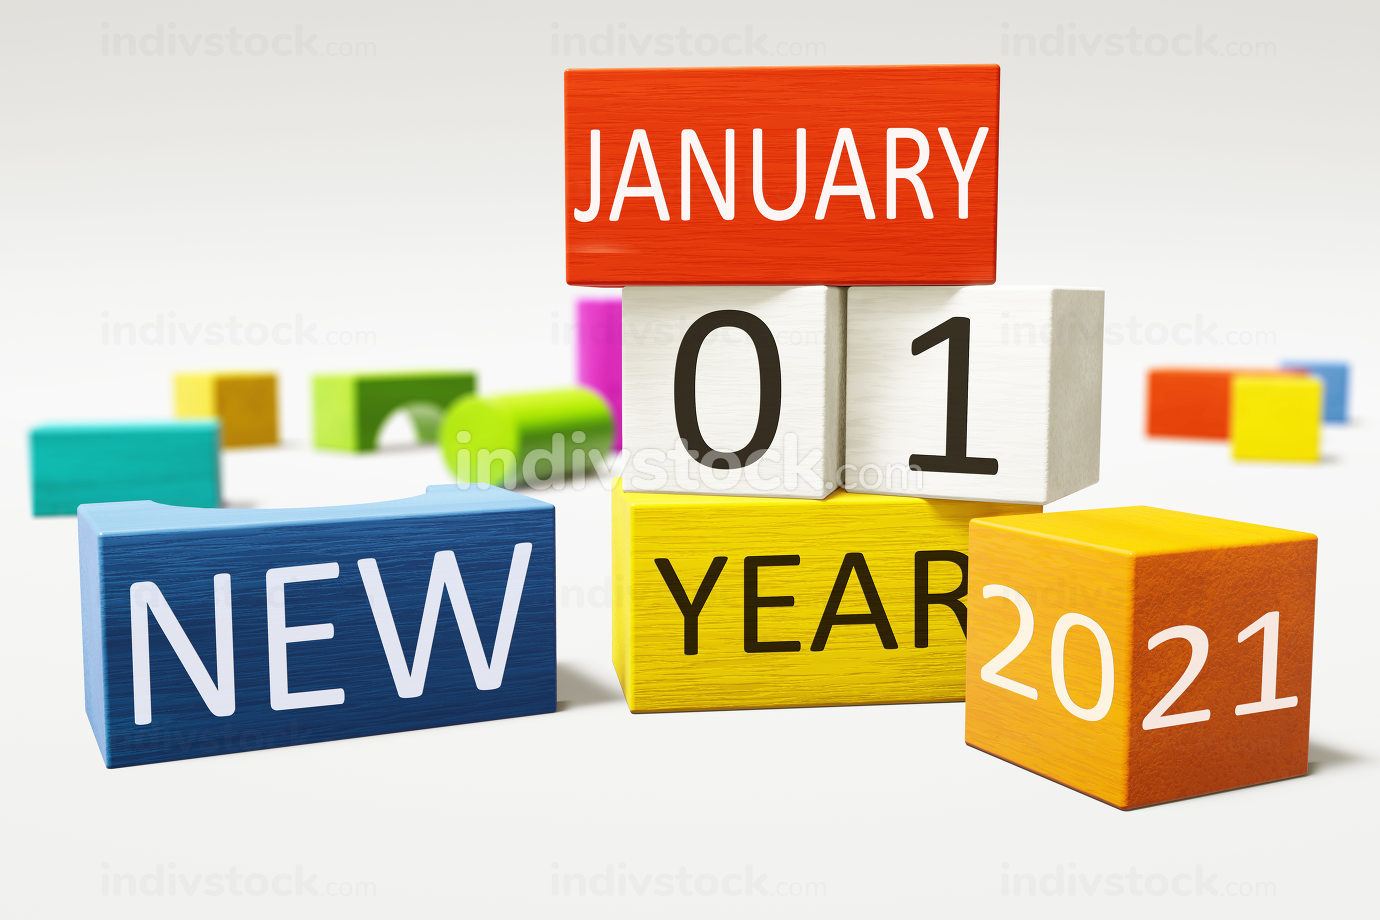 new year january thirst 2021 colorful building blocks